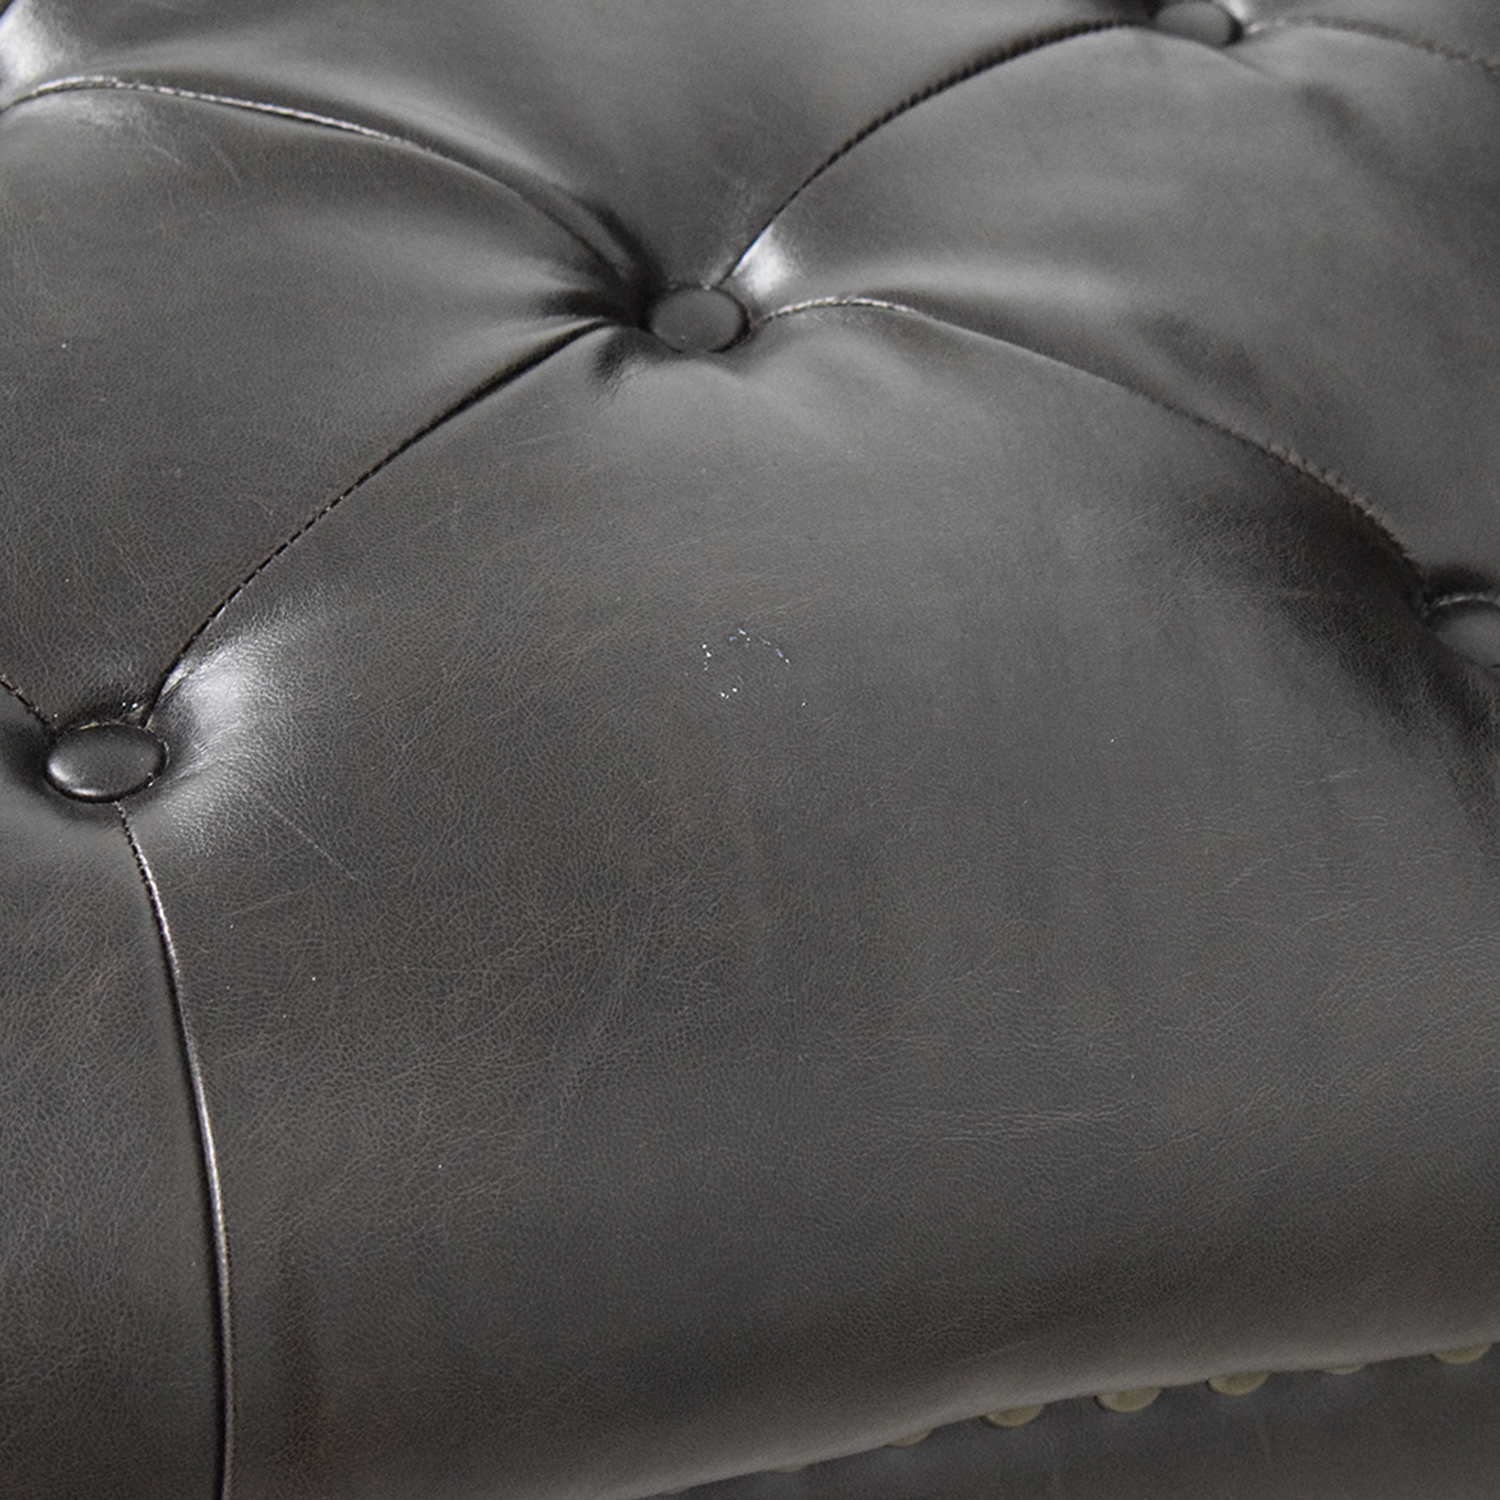 buy Raymour & Flanigan Sumter Brown Tufted Leather Chaise Raymour & Flanigan